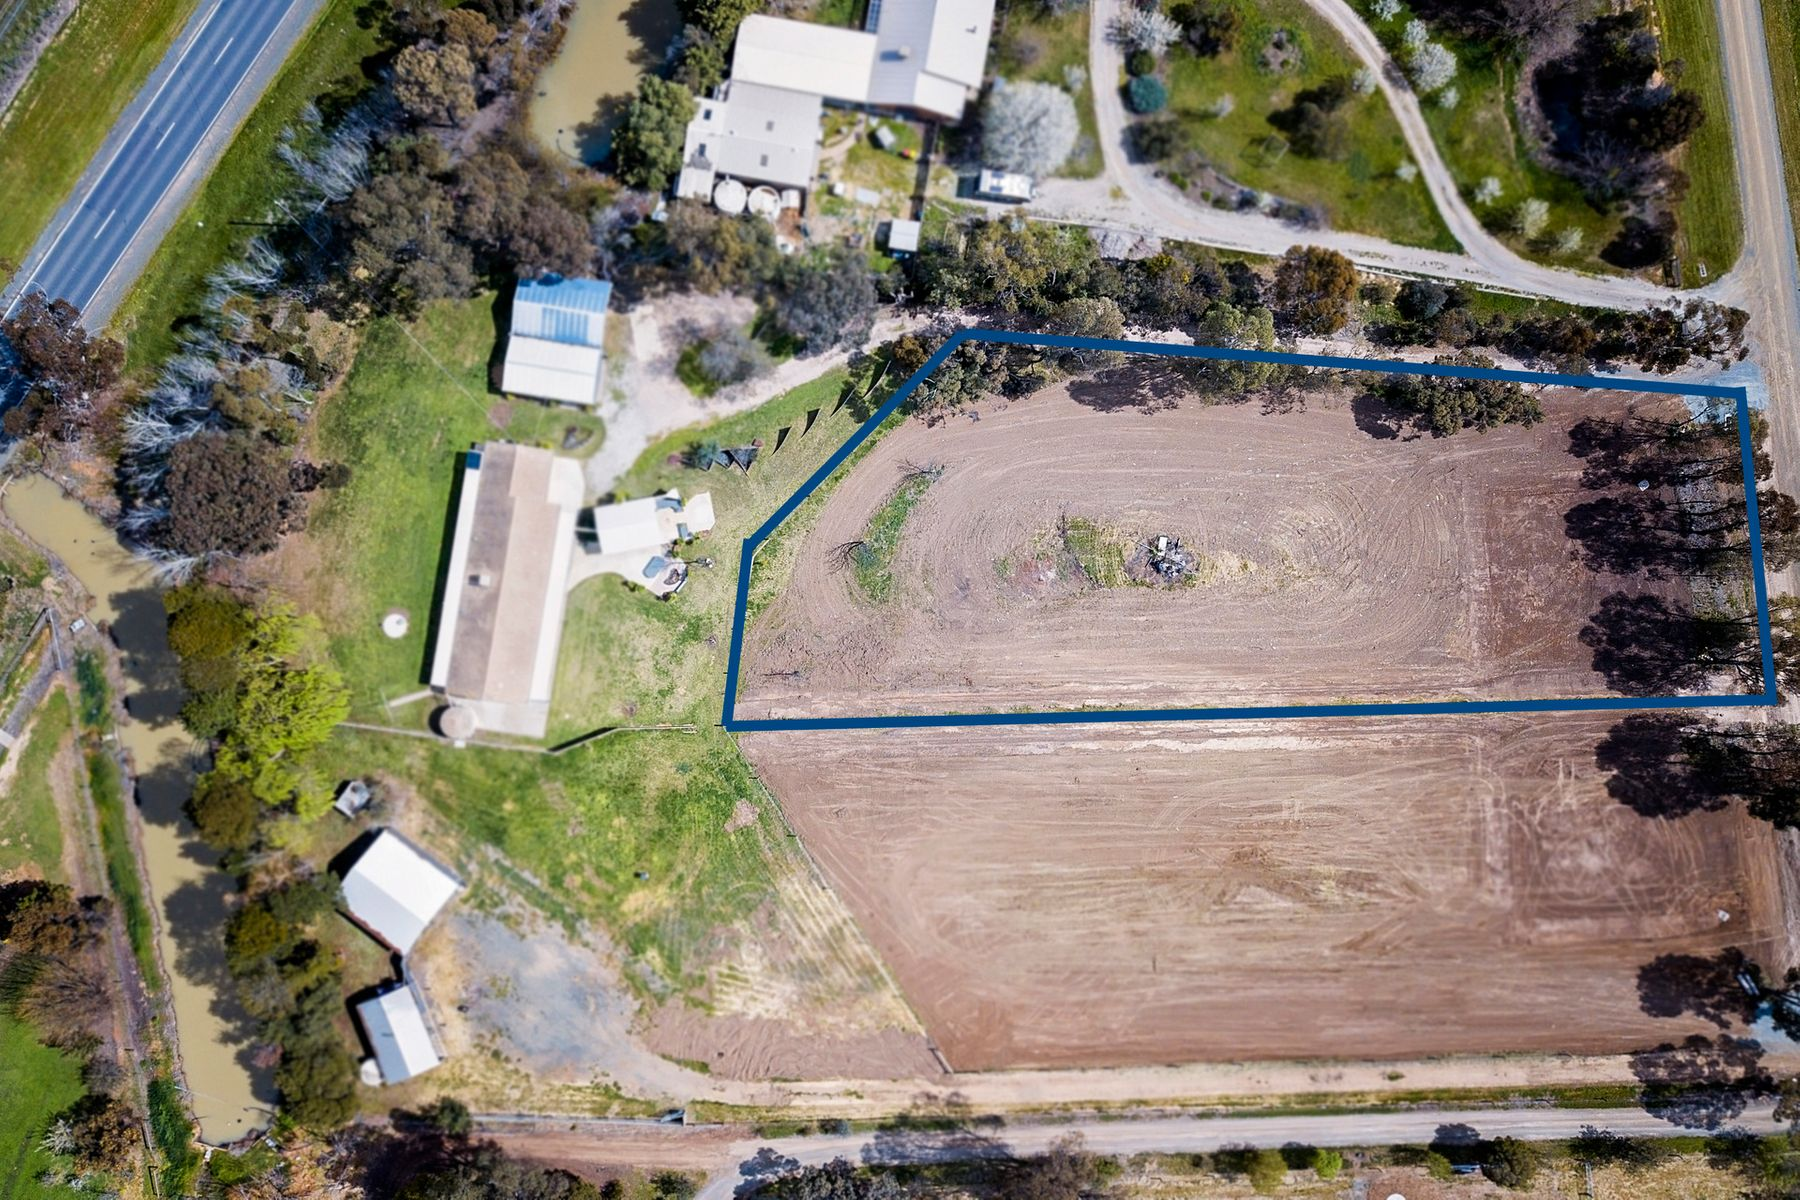 Lot 2/180 Scott Road, Echuca, VIC 3564